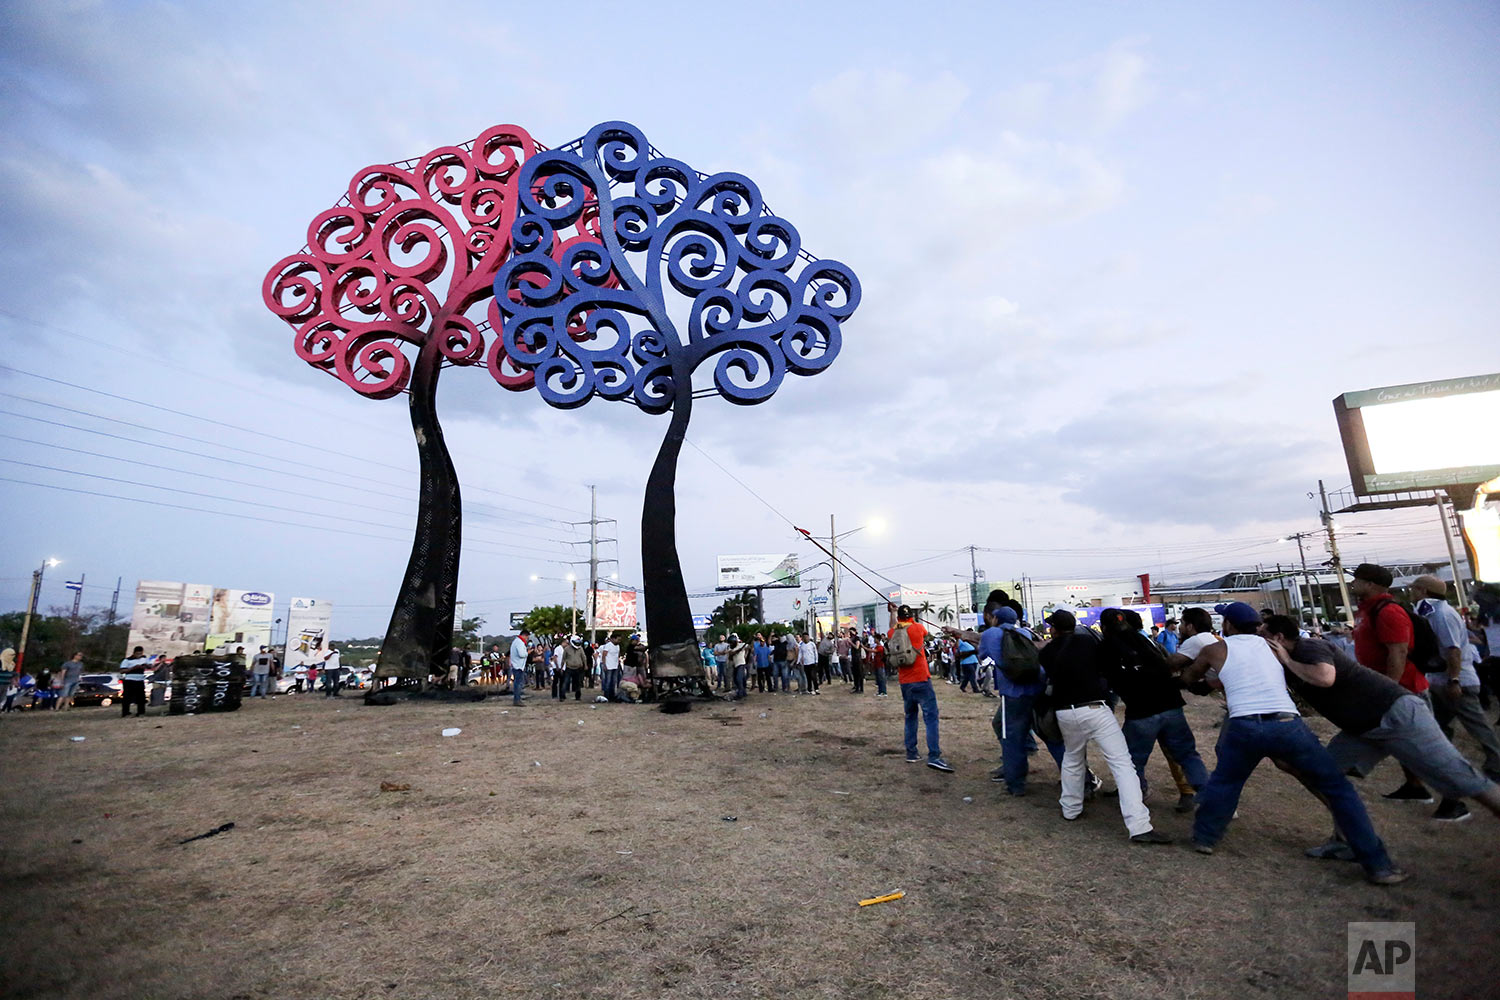 Anti-government protesters pull down a statue that is emblematic of the government of Nicaraguan President Daniel Ortega, at the Jean Paul Jennie round-about in Managua, Nicaragua, Saturday, April 21, 2018. Ortega said Saturday that his government is willing to enter into talks over social security reforms that have sparked four days of protests and clashes in which, rights monitors say, at least 25 people have died. A journalist covering the unrest was also killed. (AP Photo/Alfredo Zuniga)